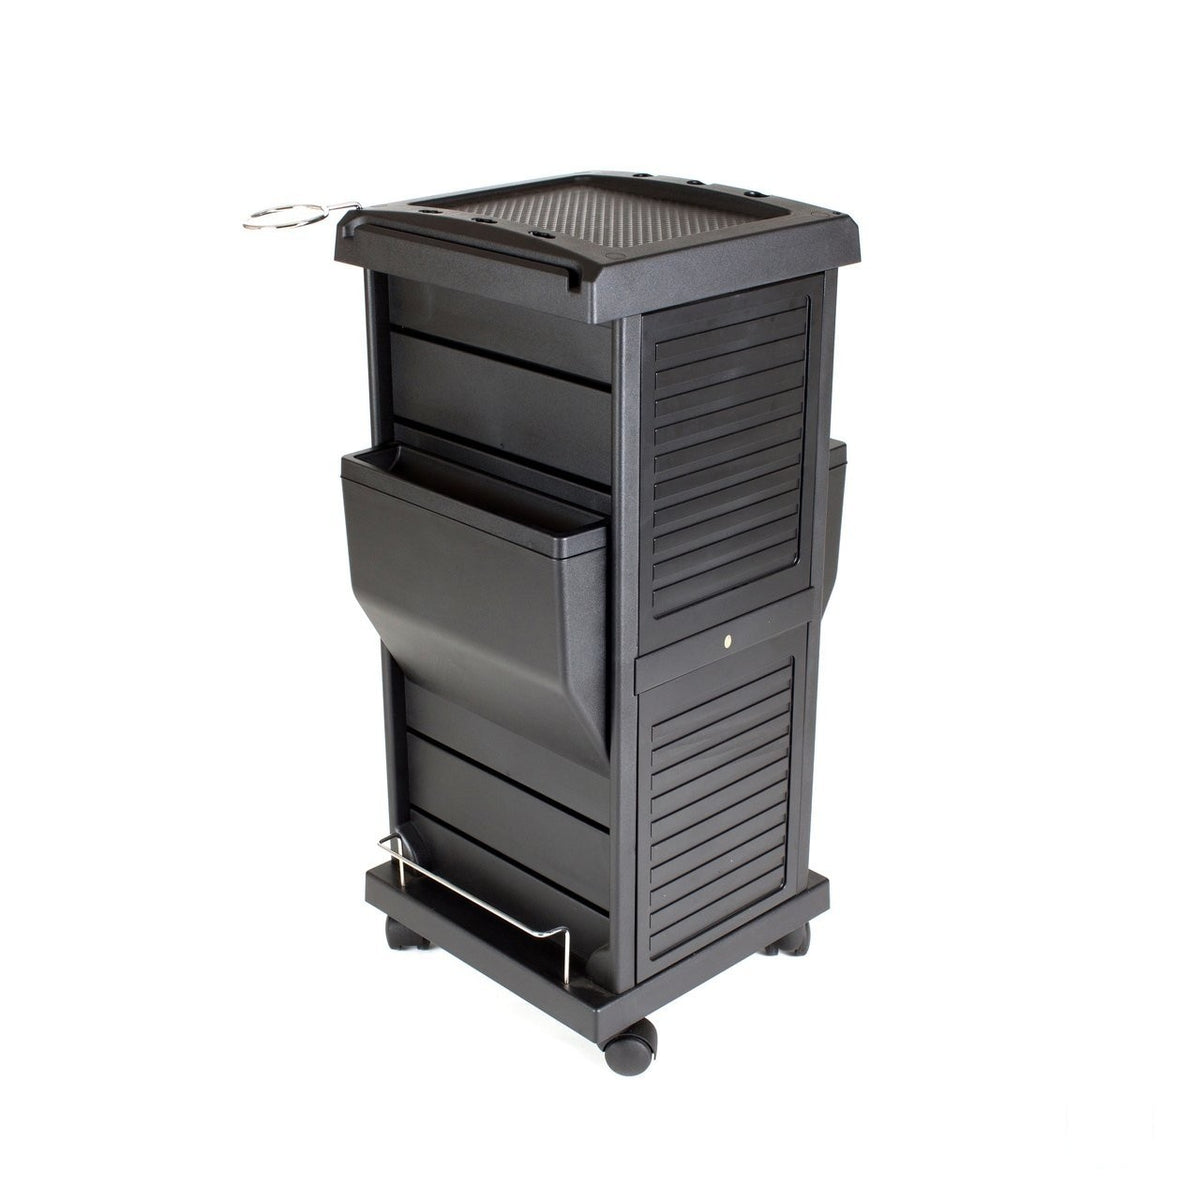 Berkeley Berkeley Claire Lockable Salon Trolley Work Station - ChairsThatGive